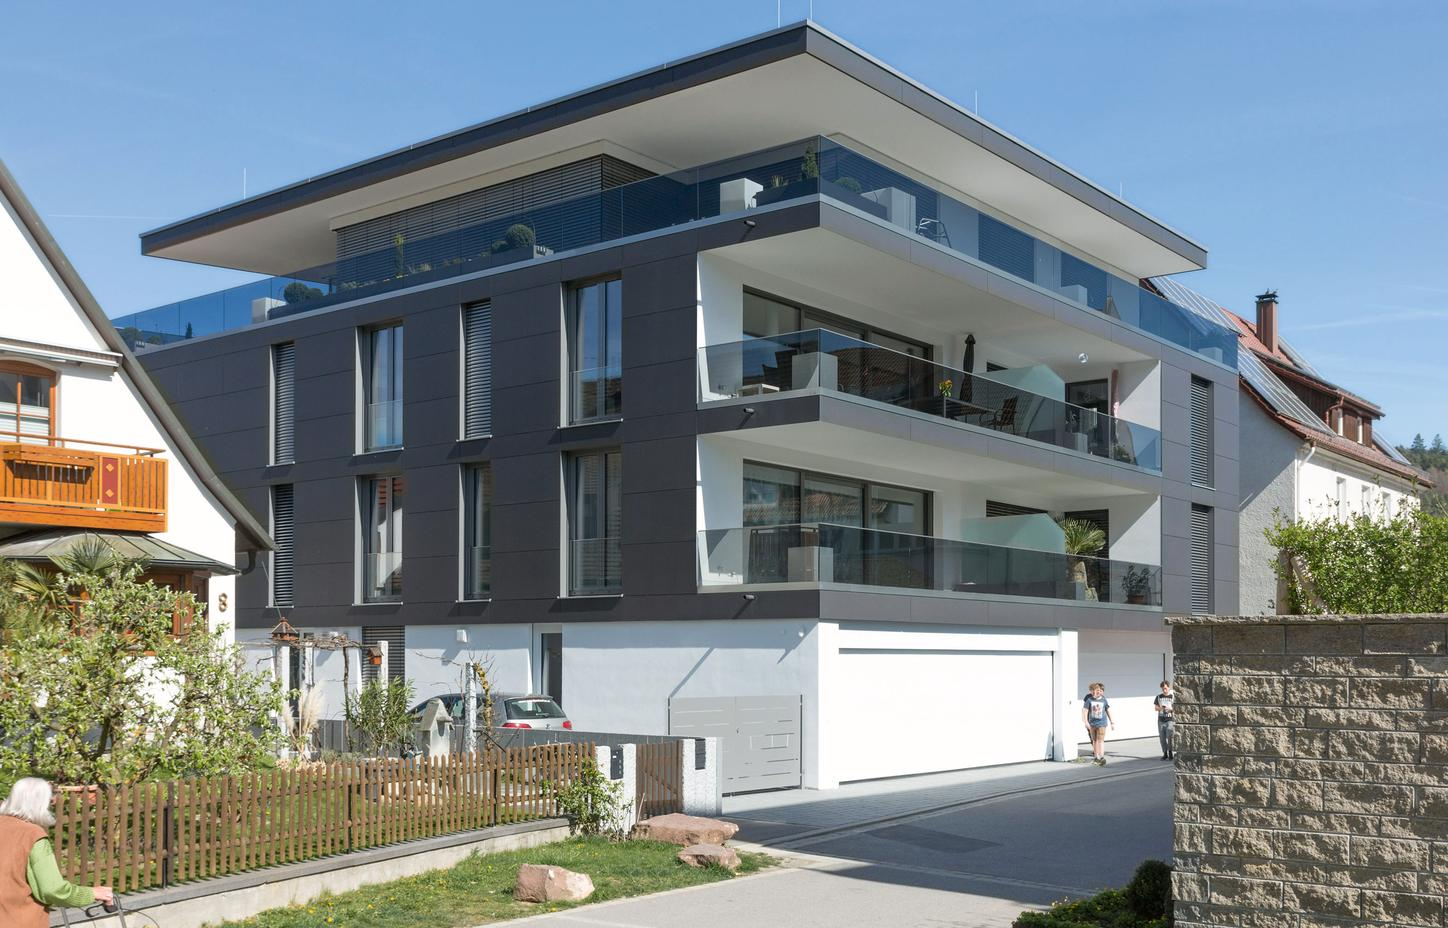 The picture shows the House of the Future in Baden-Württemberg.